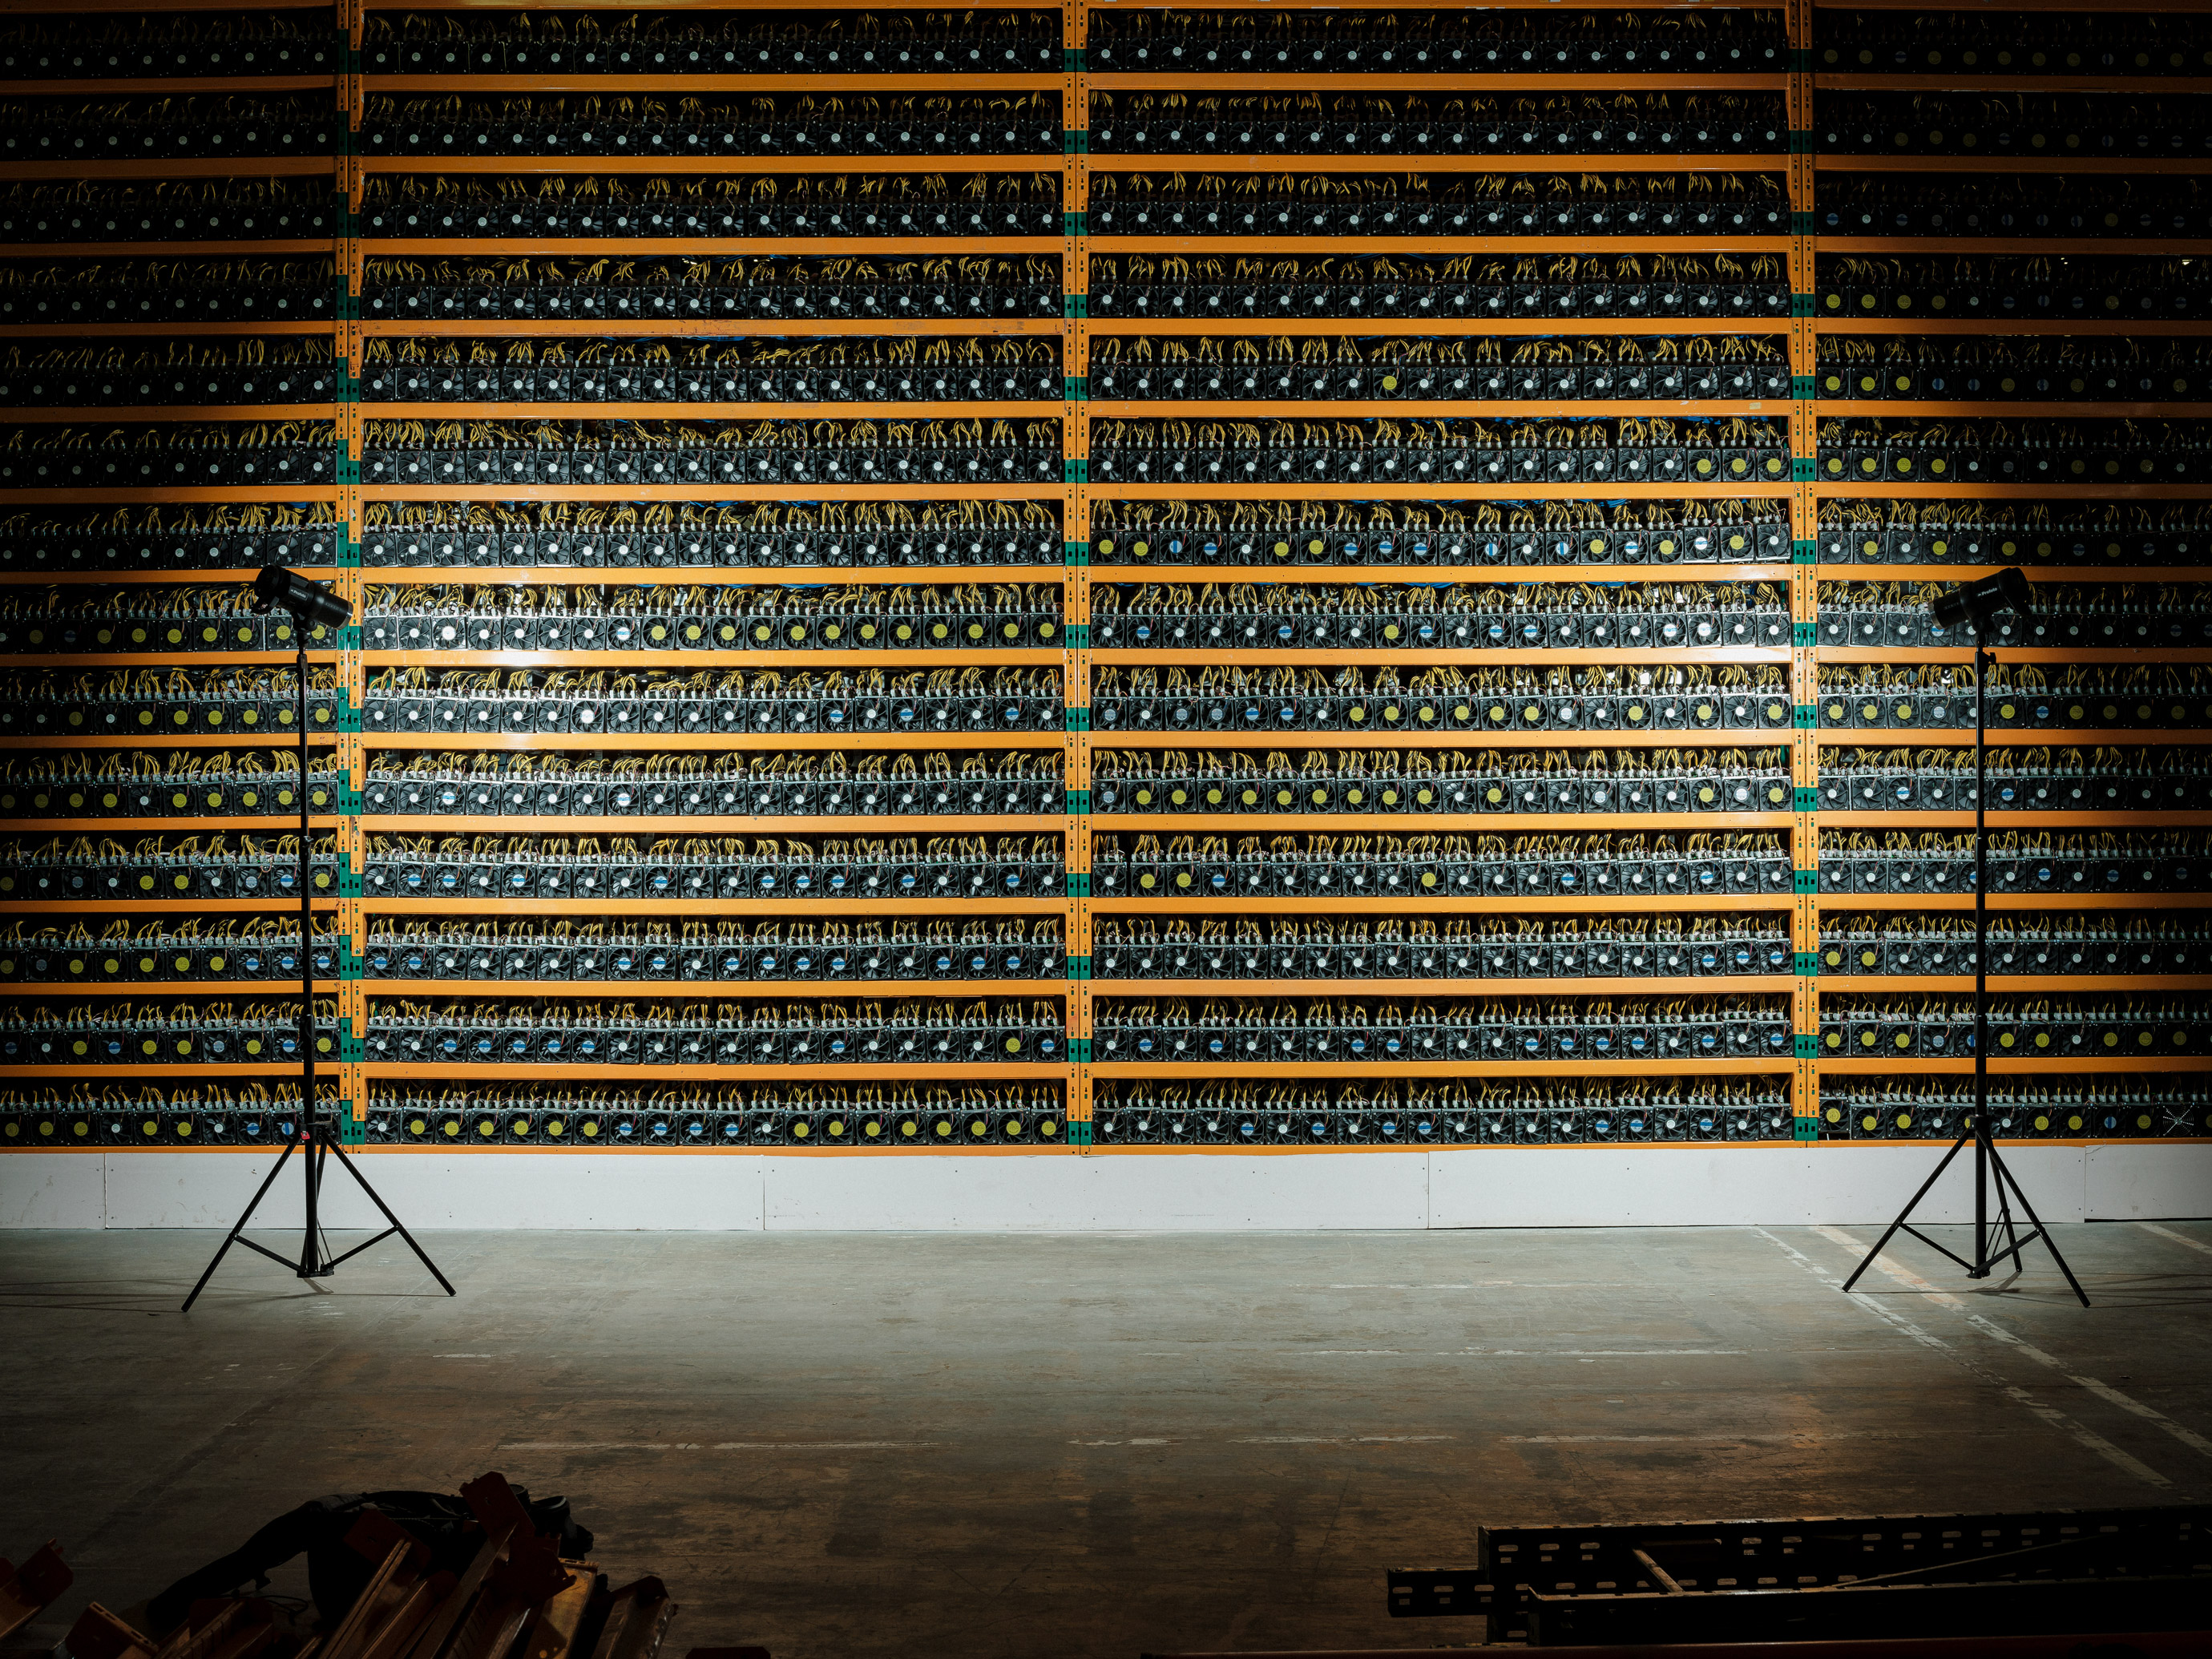 how does cryptocurrency mining harm the environment